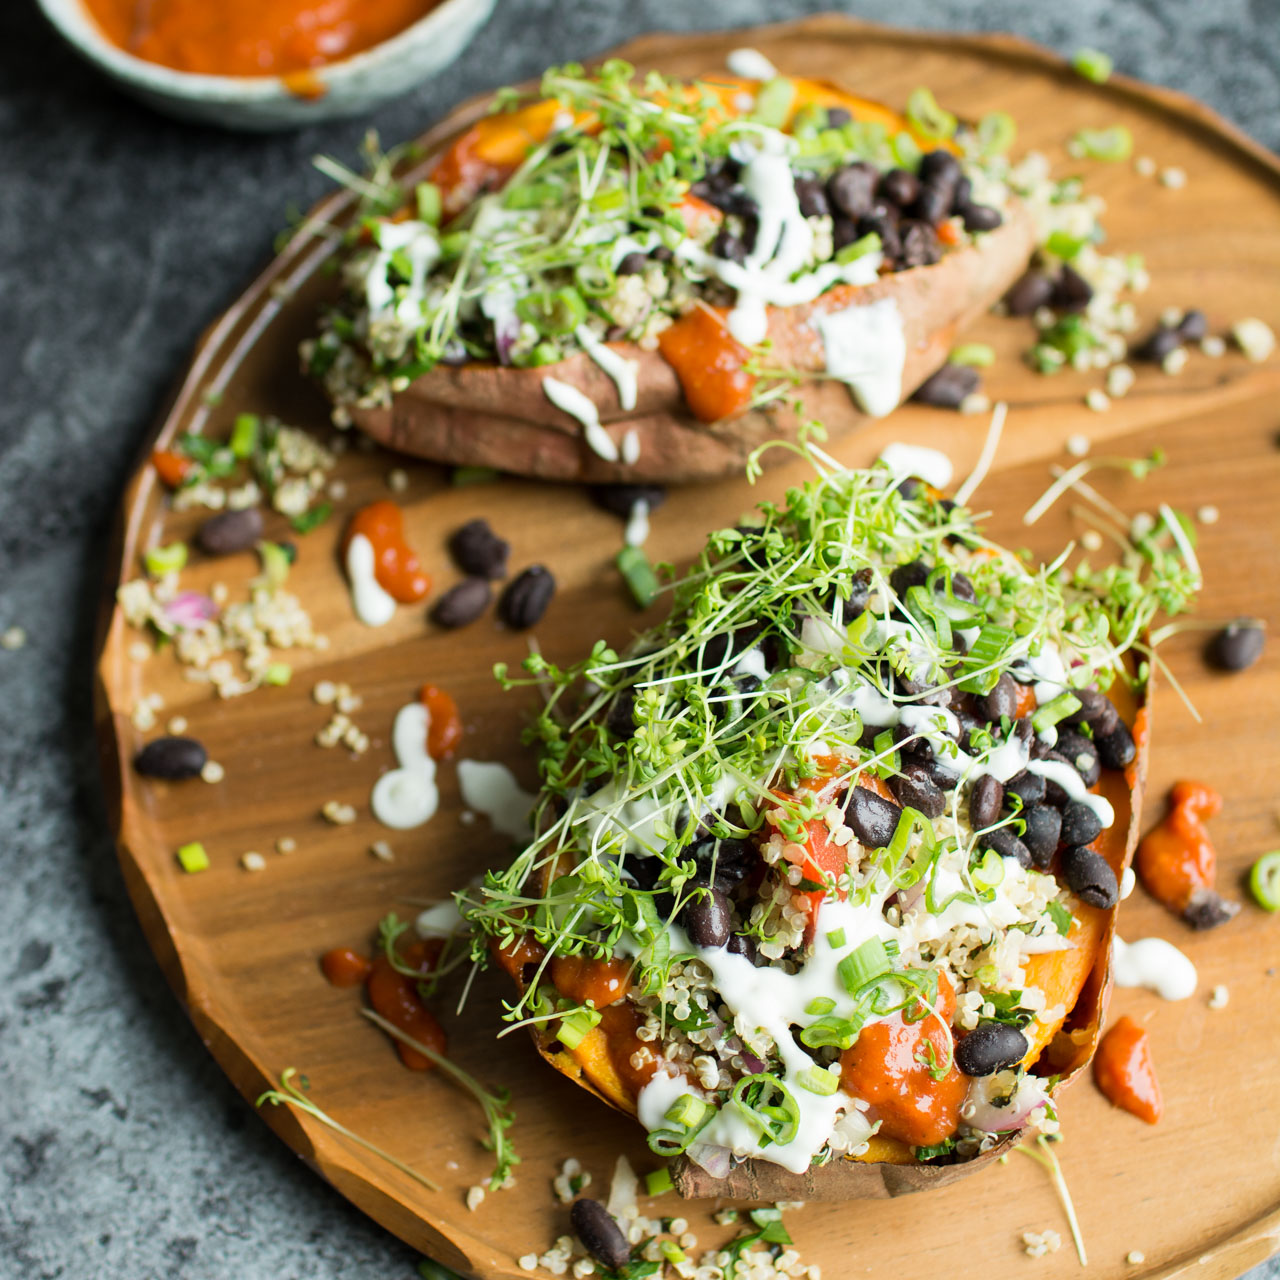 Loaded-Sweet-Potatoes-with-Quinoa-Tabbouleh-5